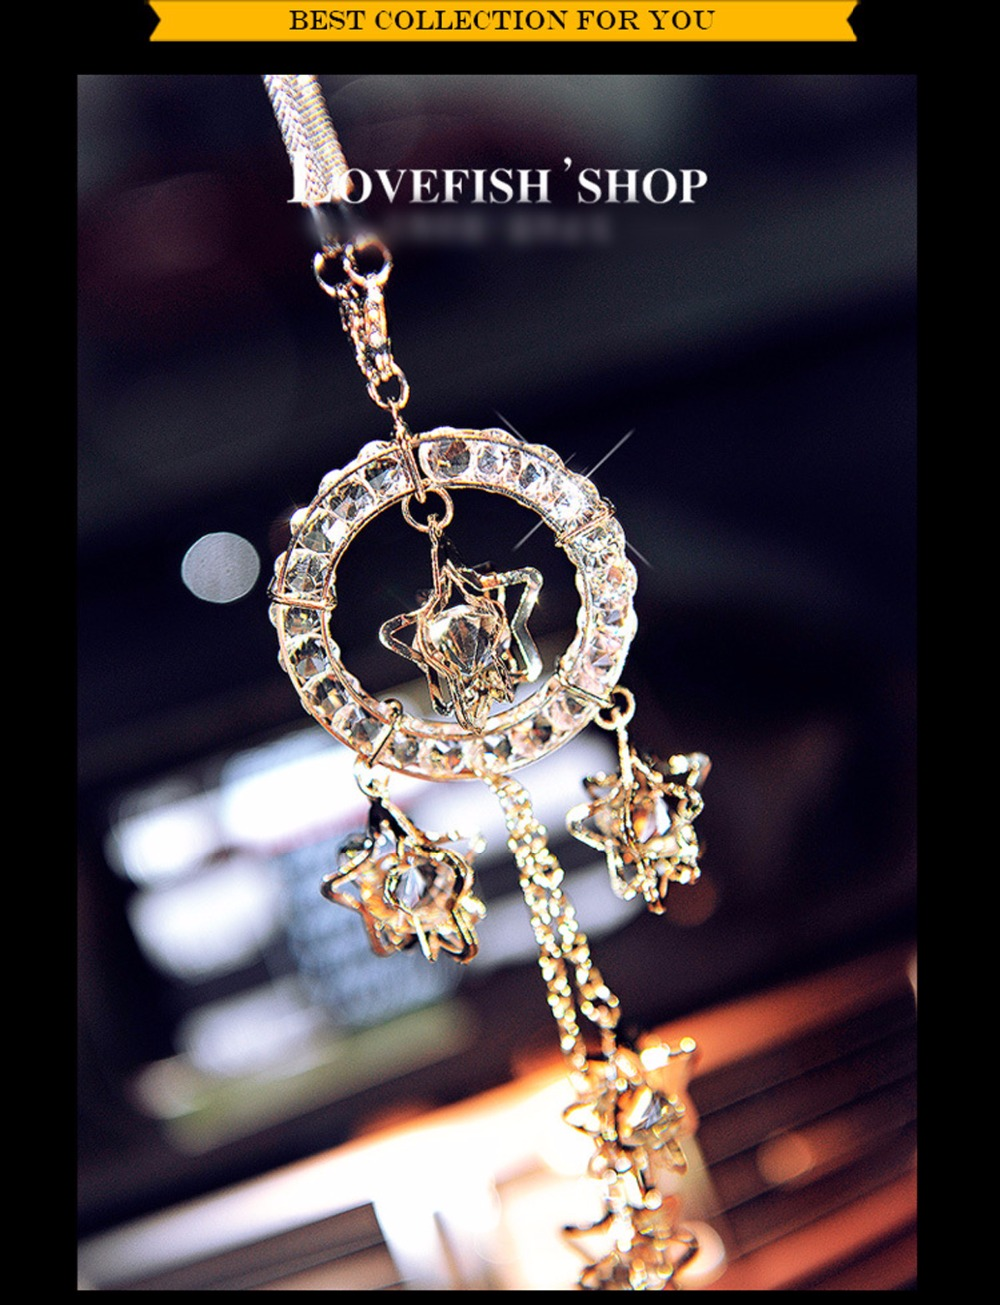 Car Rearview <font><b>Mirror</b></font> Hanging Crystal Charm Dangling Pendant Ornament Car Interior Decoration Accessories 2016 Best Girl Gift